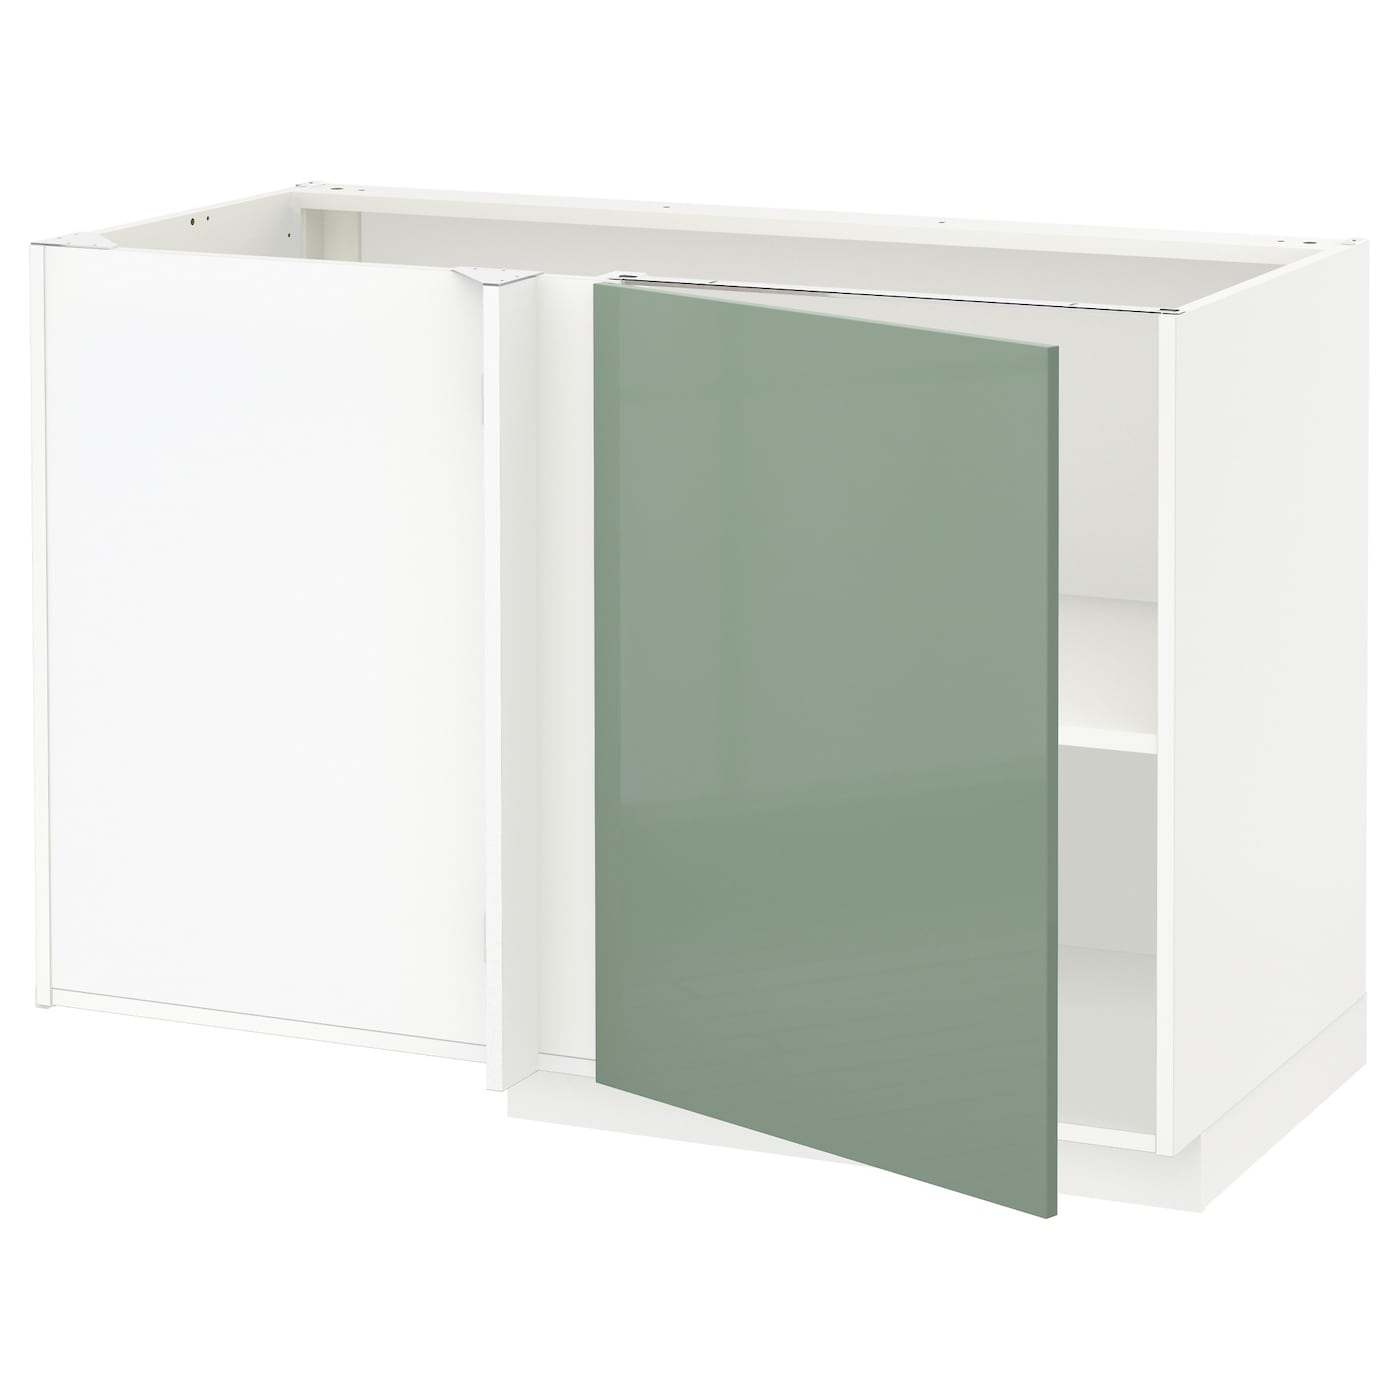 Ikea Kitchen Cabinet Lighting: METOD Corner Base Cabinet With Shelf White/kallarp Light